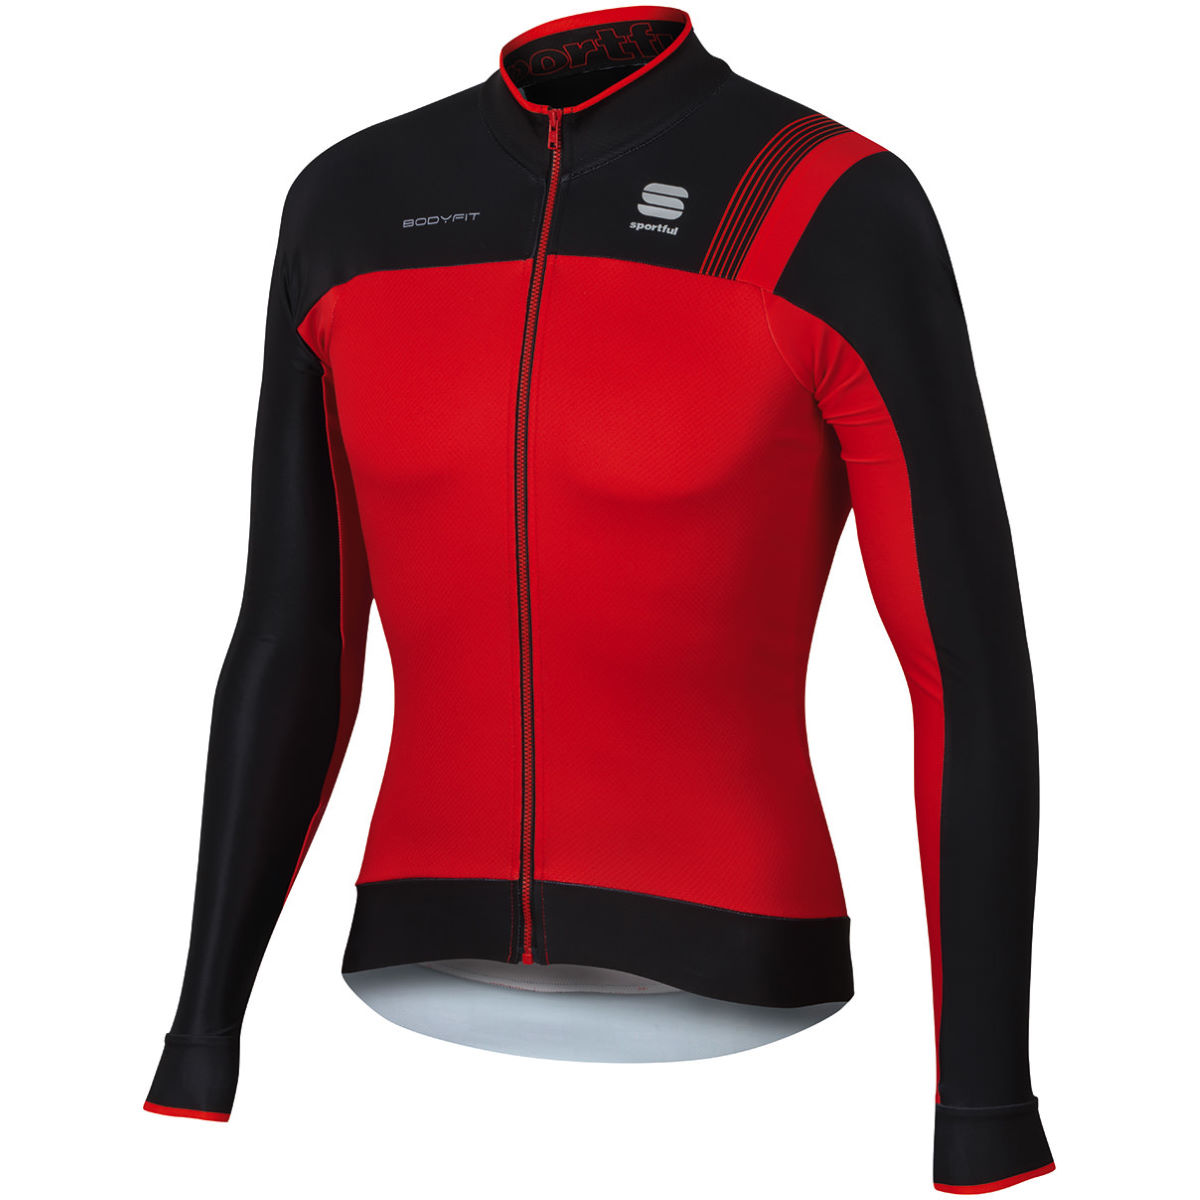 Maillot Sportful BodyFit Pro Thermal - XL Red/Black/Fire Red